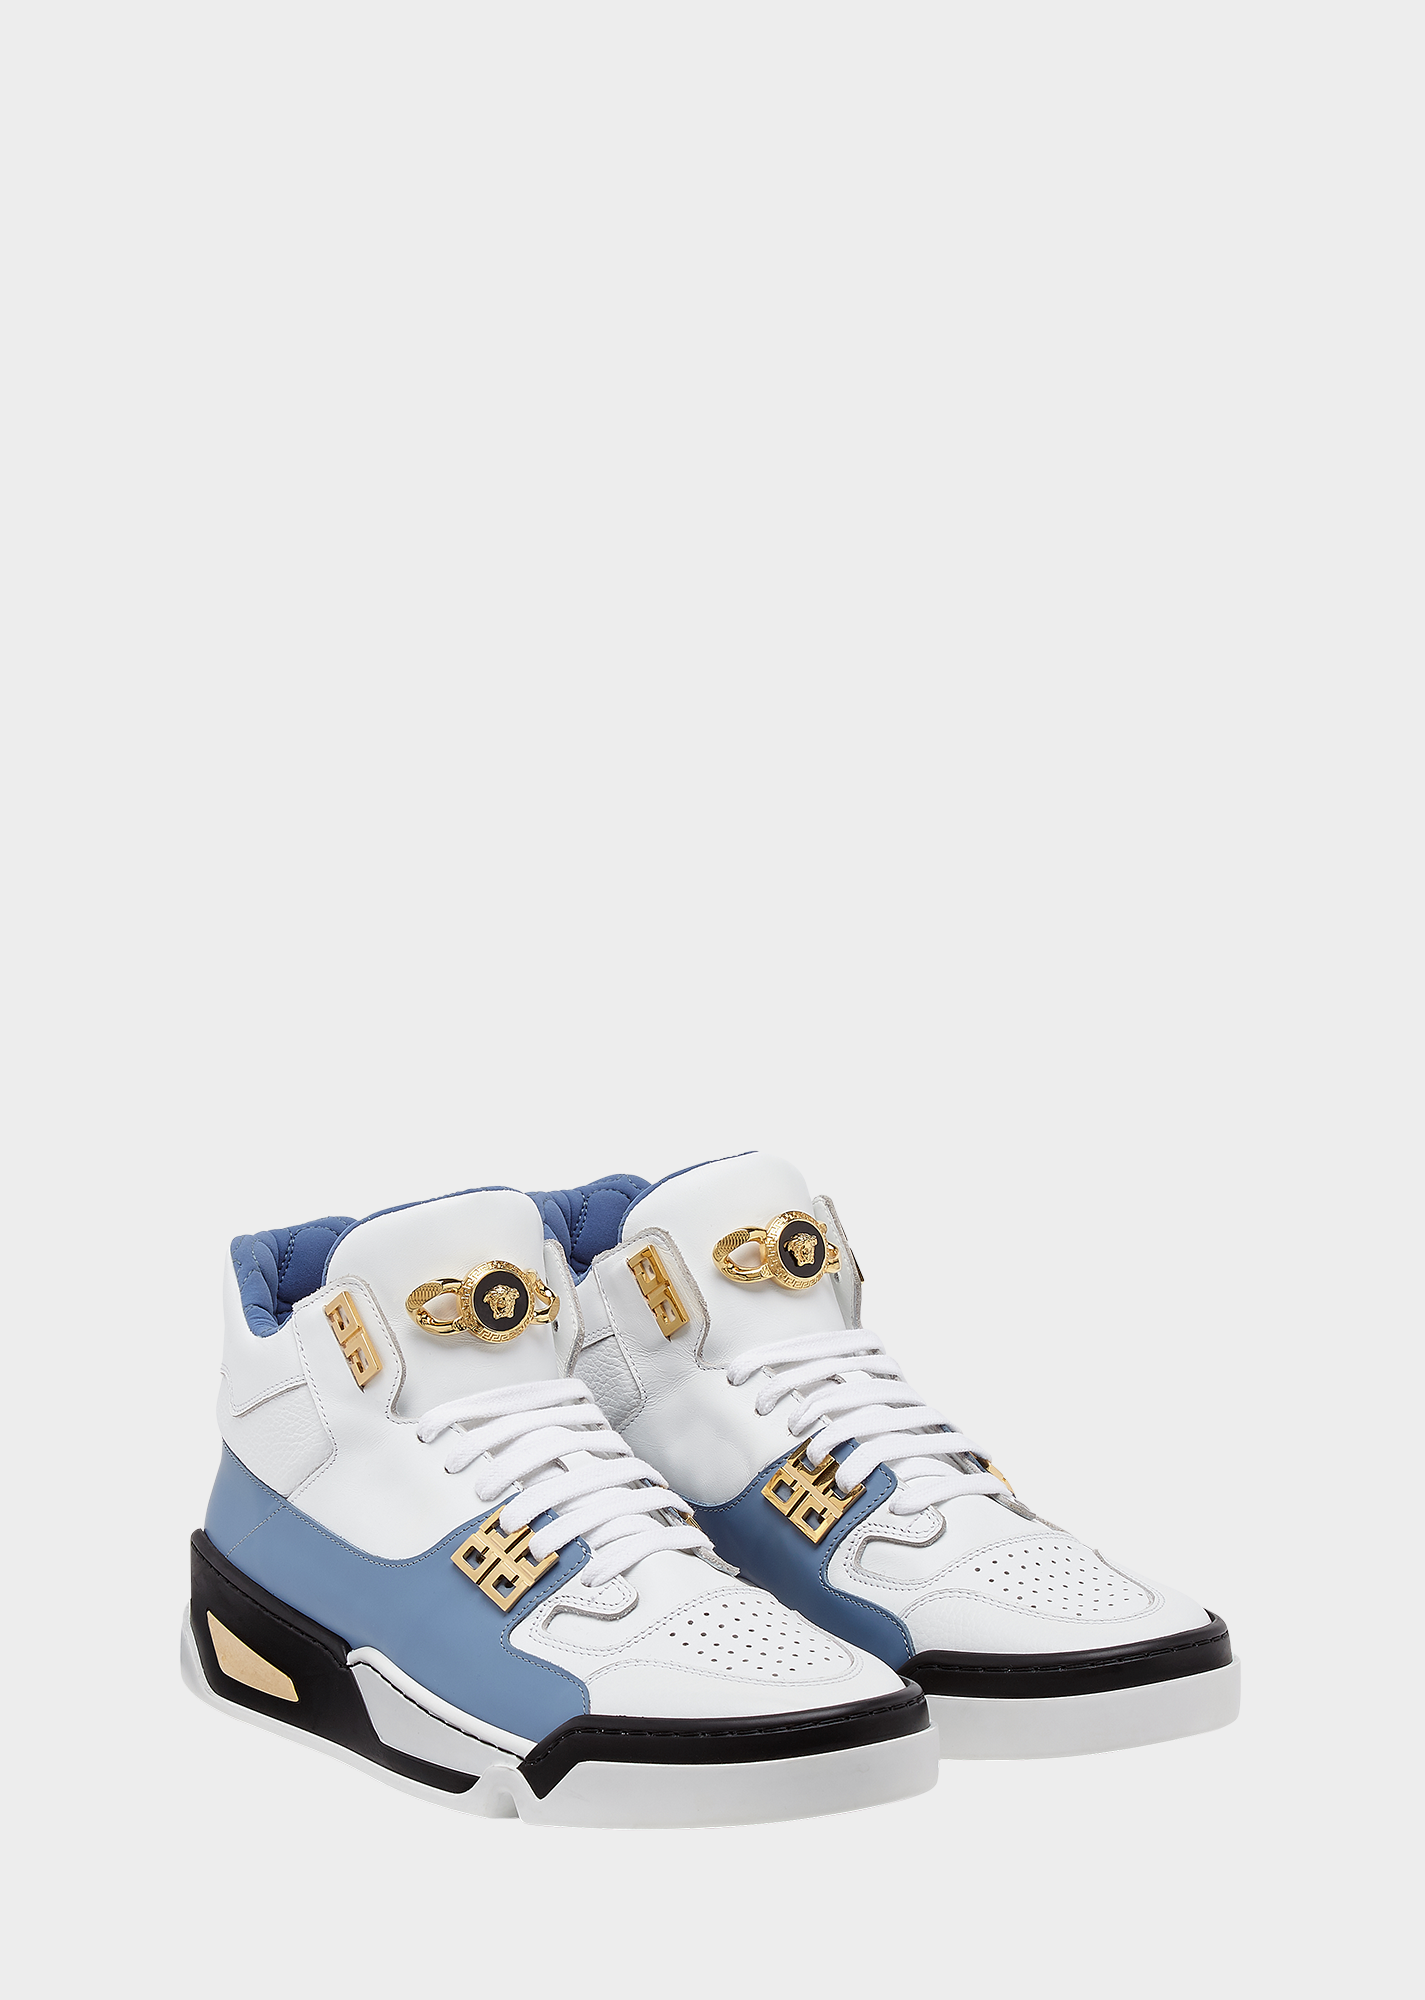 Versace shoes, Sneakers